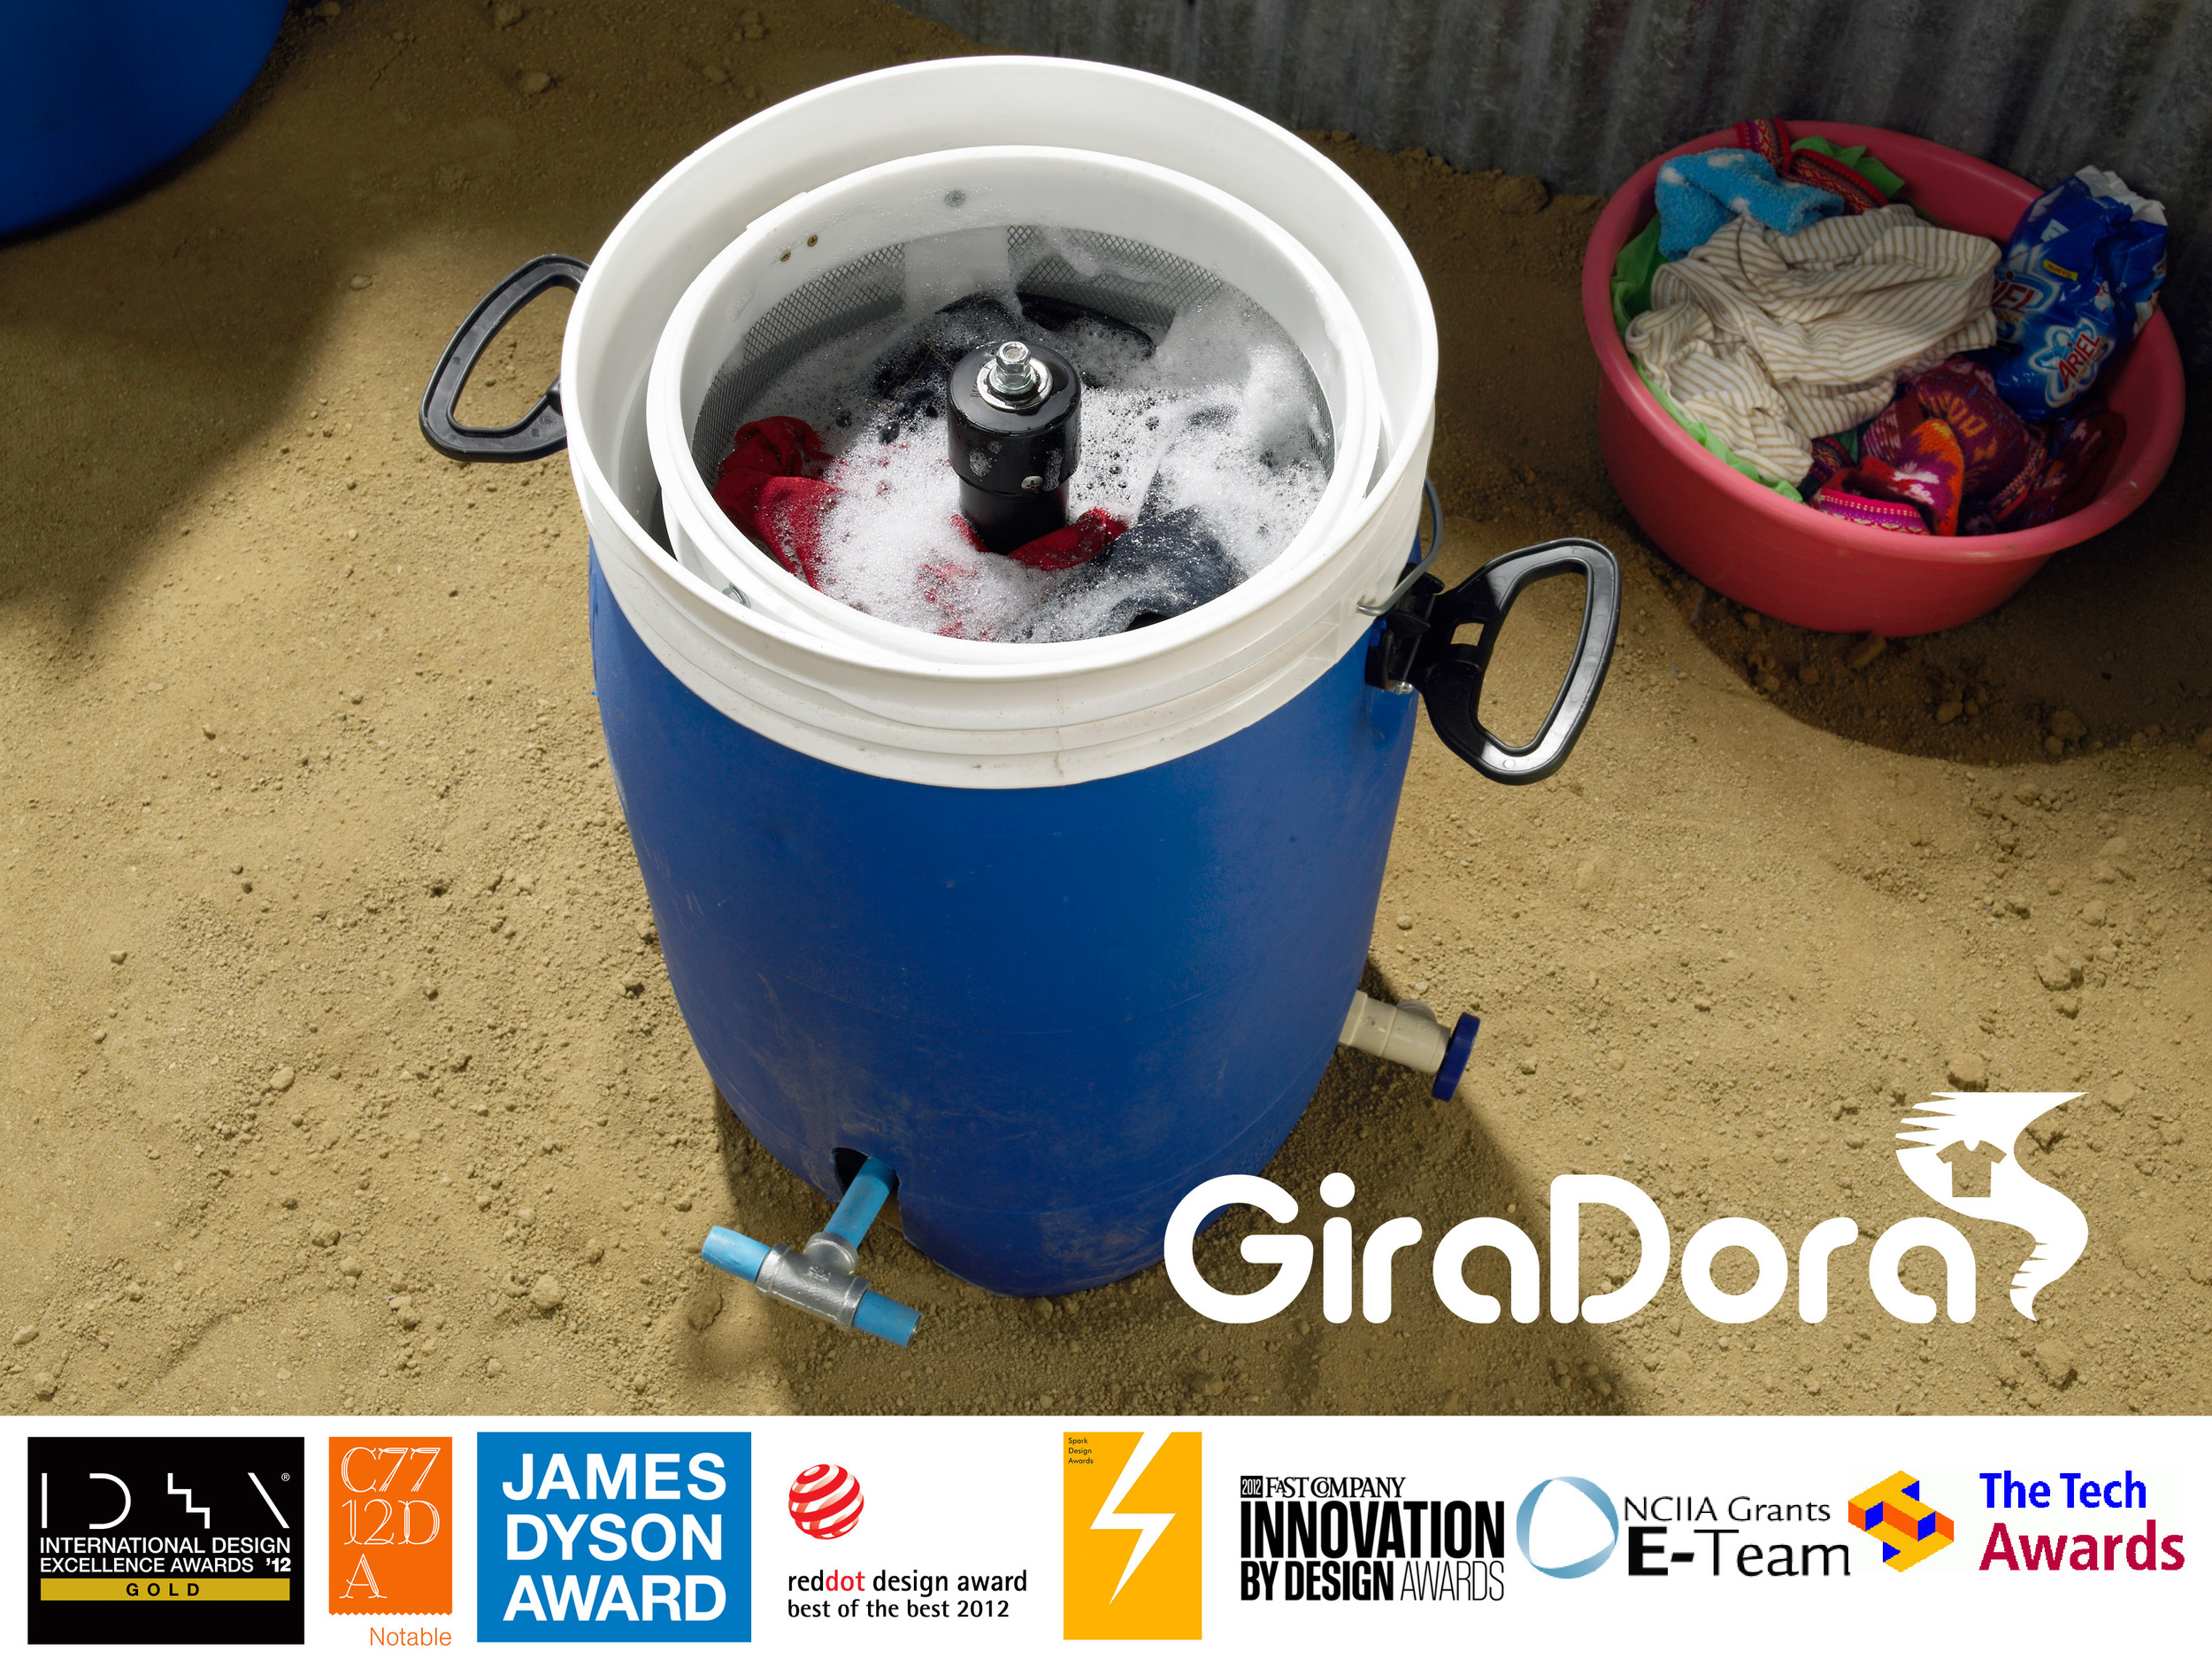 A human-powered washer and spin dryer designed to improve the experience and efficiency of hand-washing clothes.